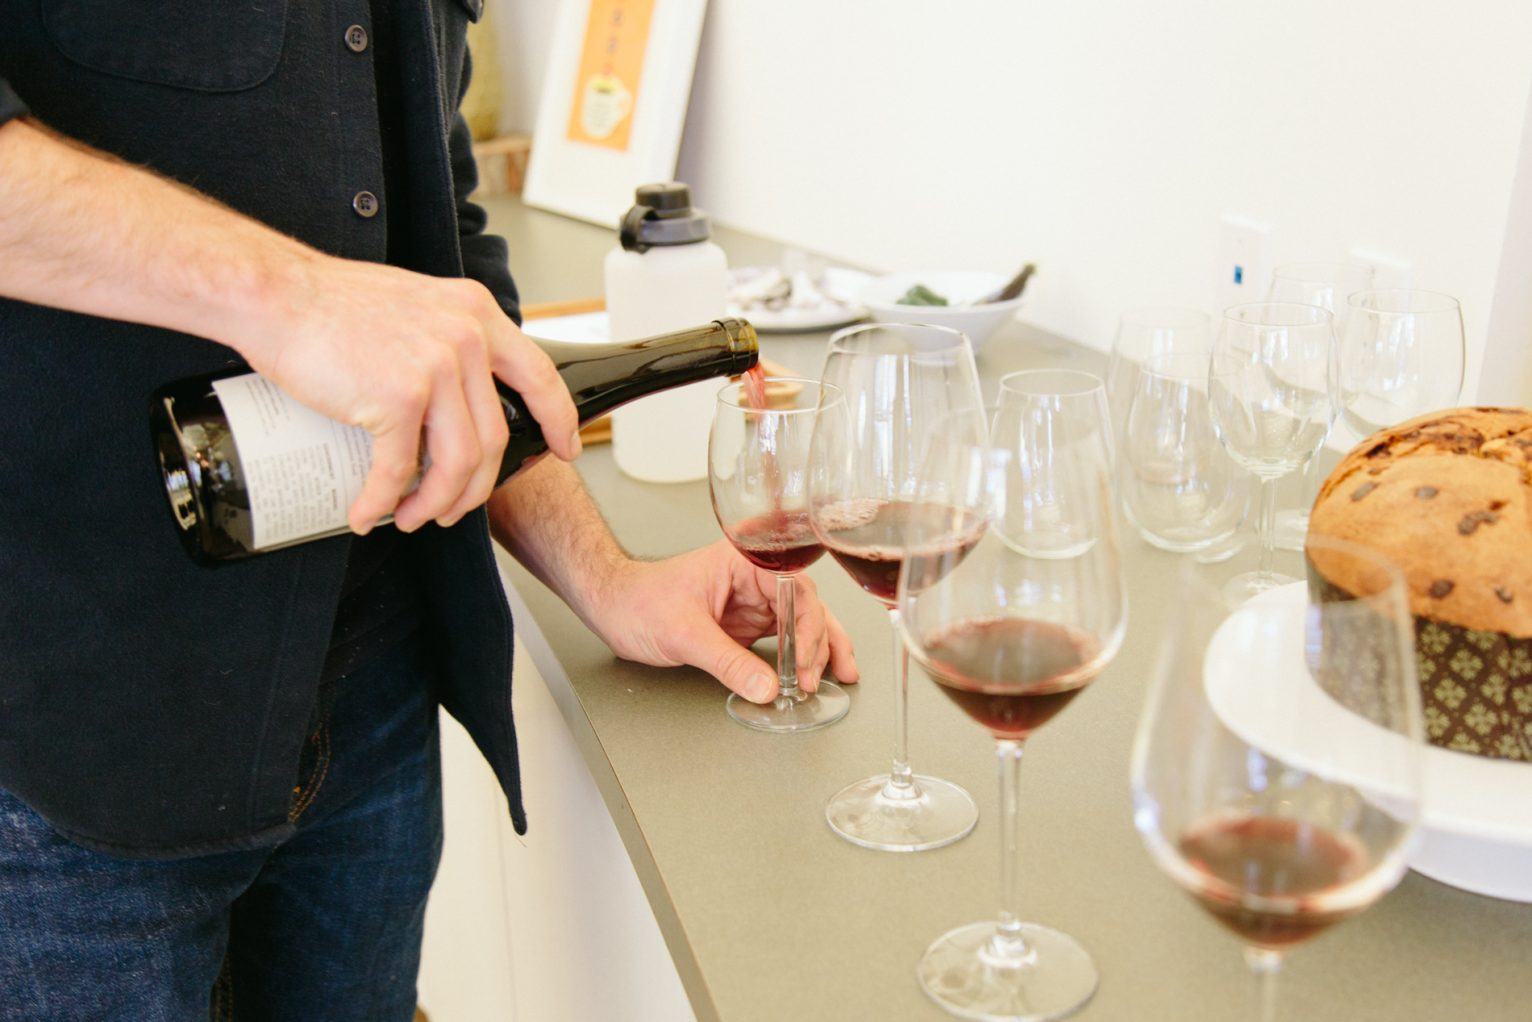 Pouring the Gramercy Cellars